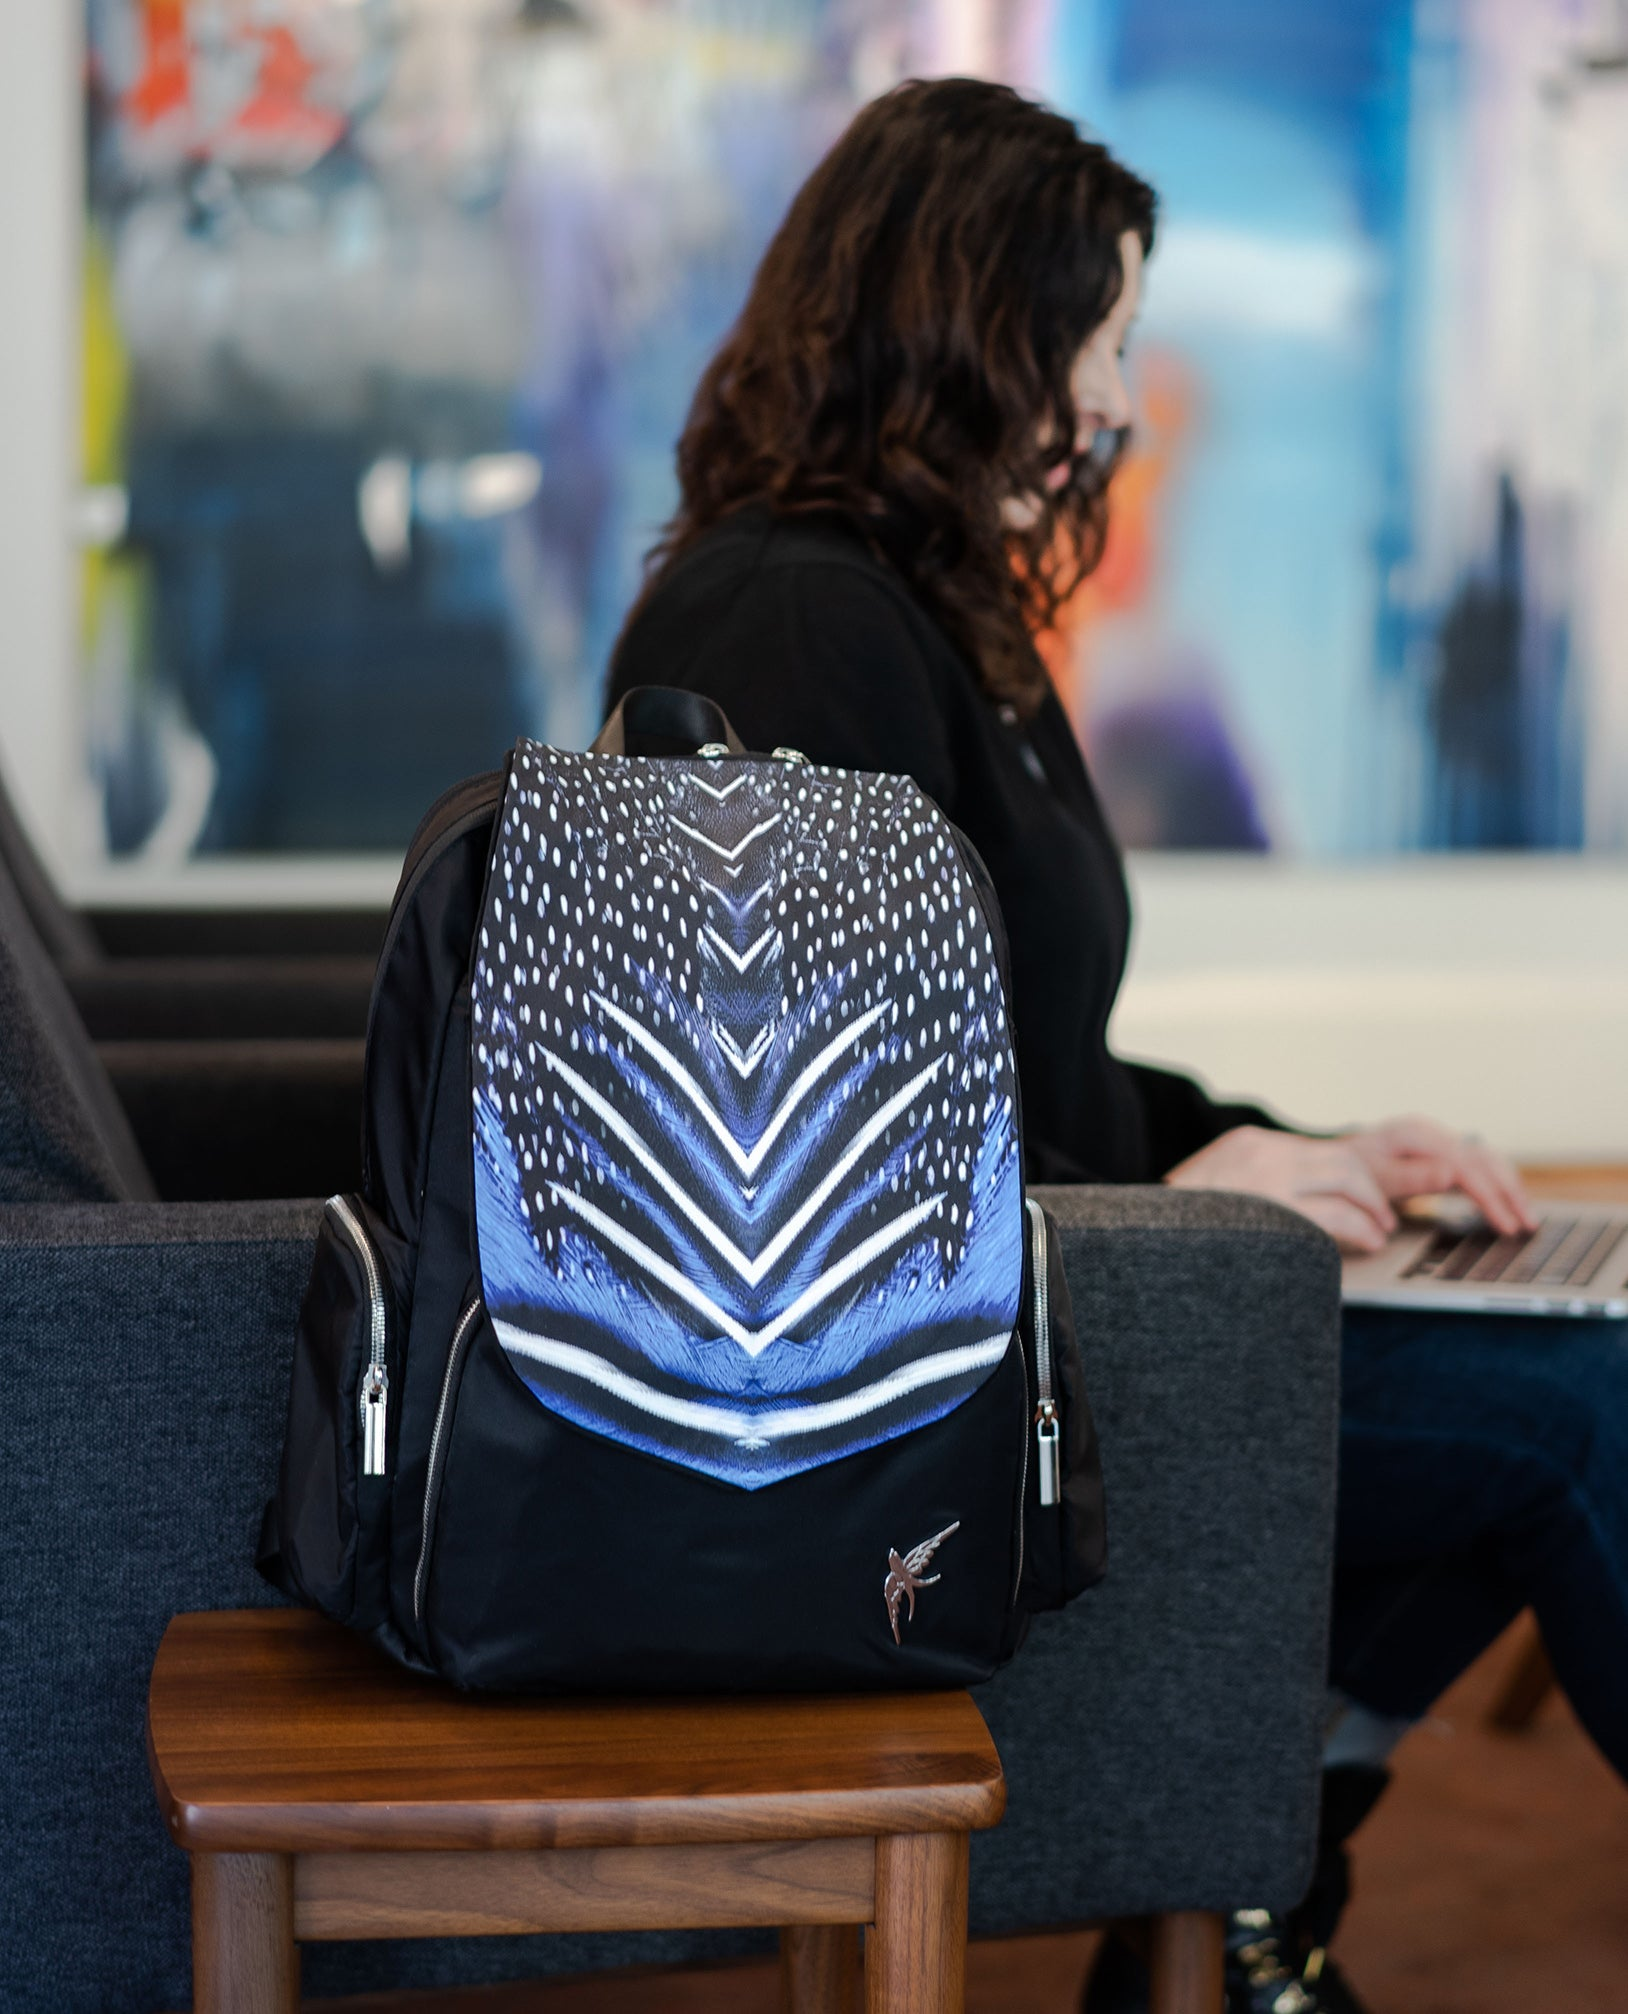 Laptop bag by GraceTech featuring the Cobalt Feathers Print on our Laptop Backpack with a separate computer section.